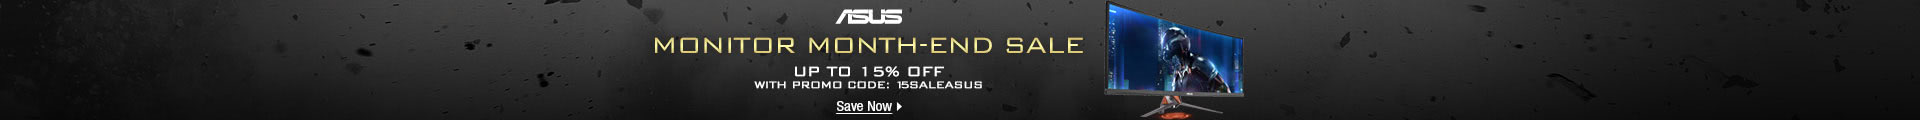 MONTITOR MONTH-END SALE